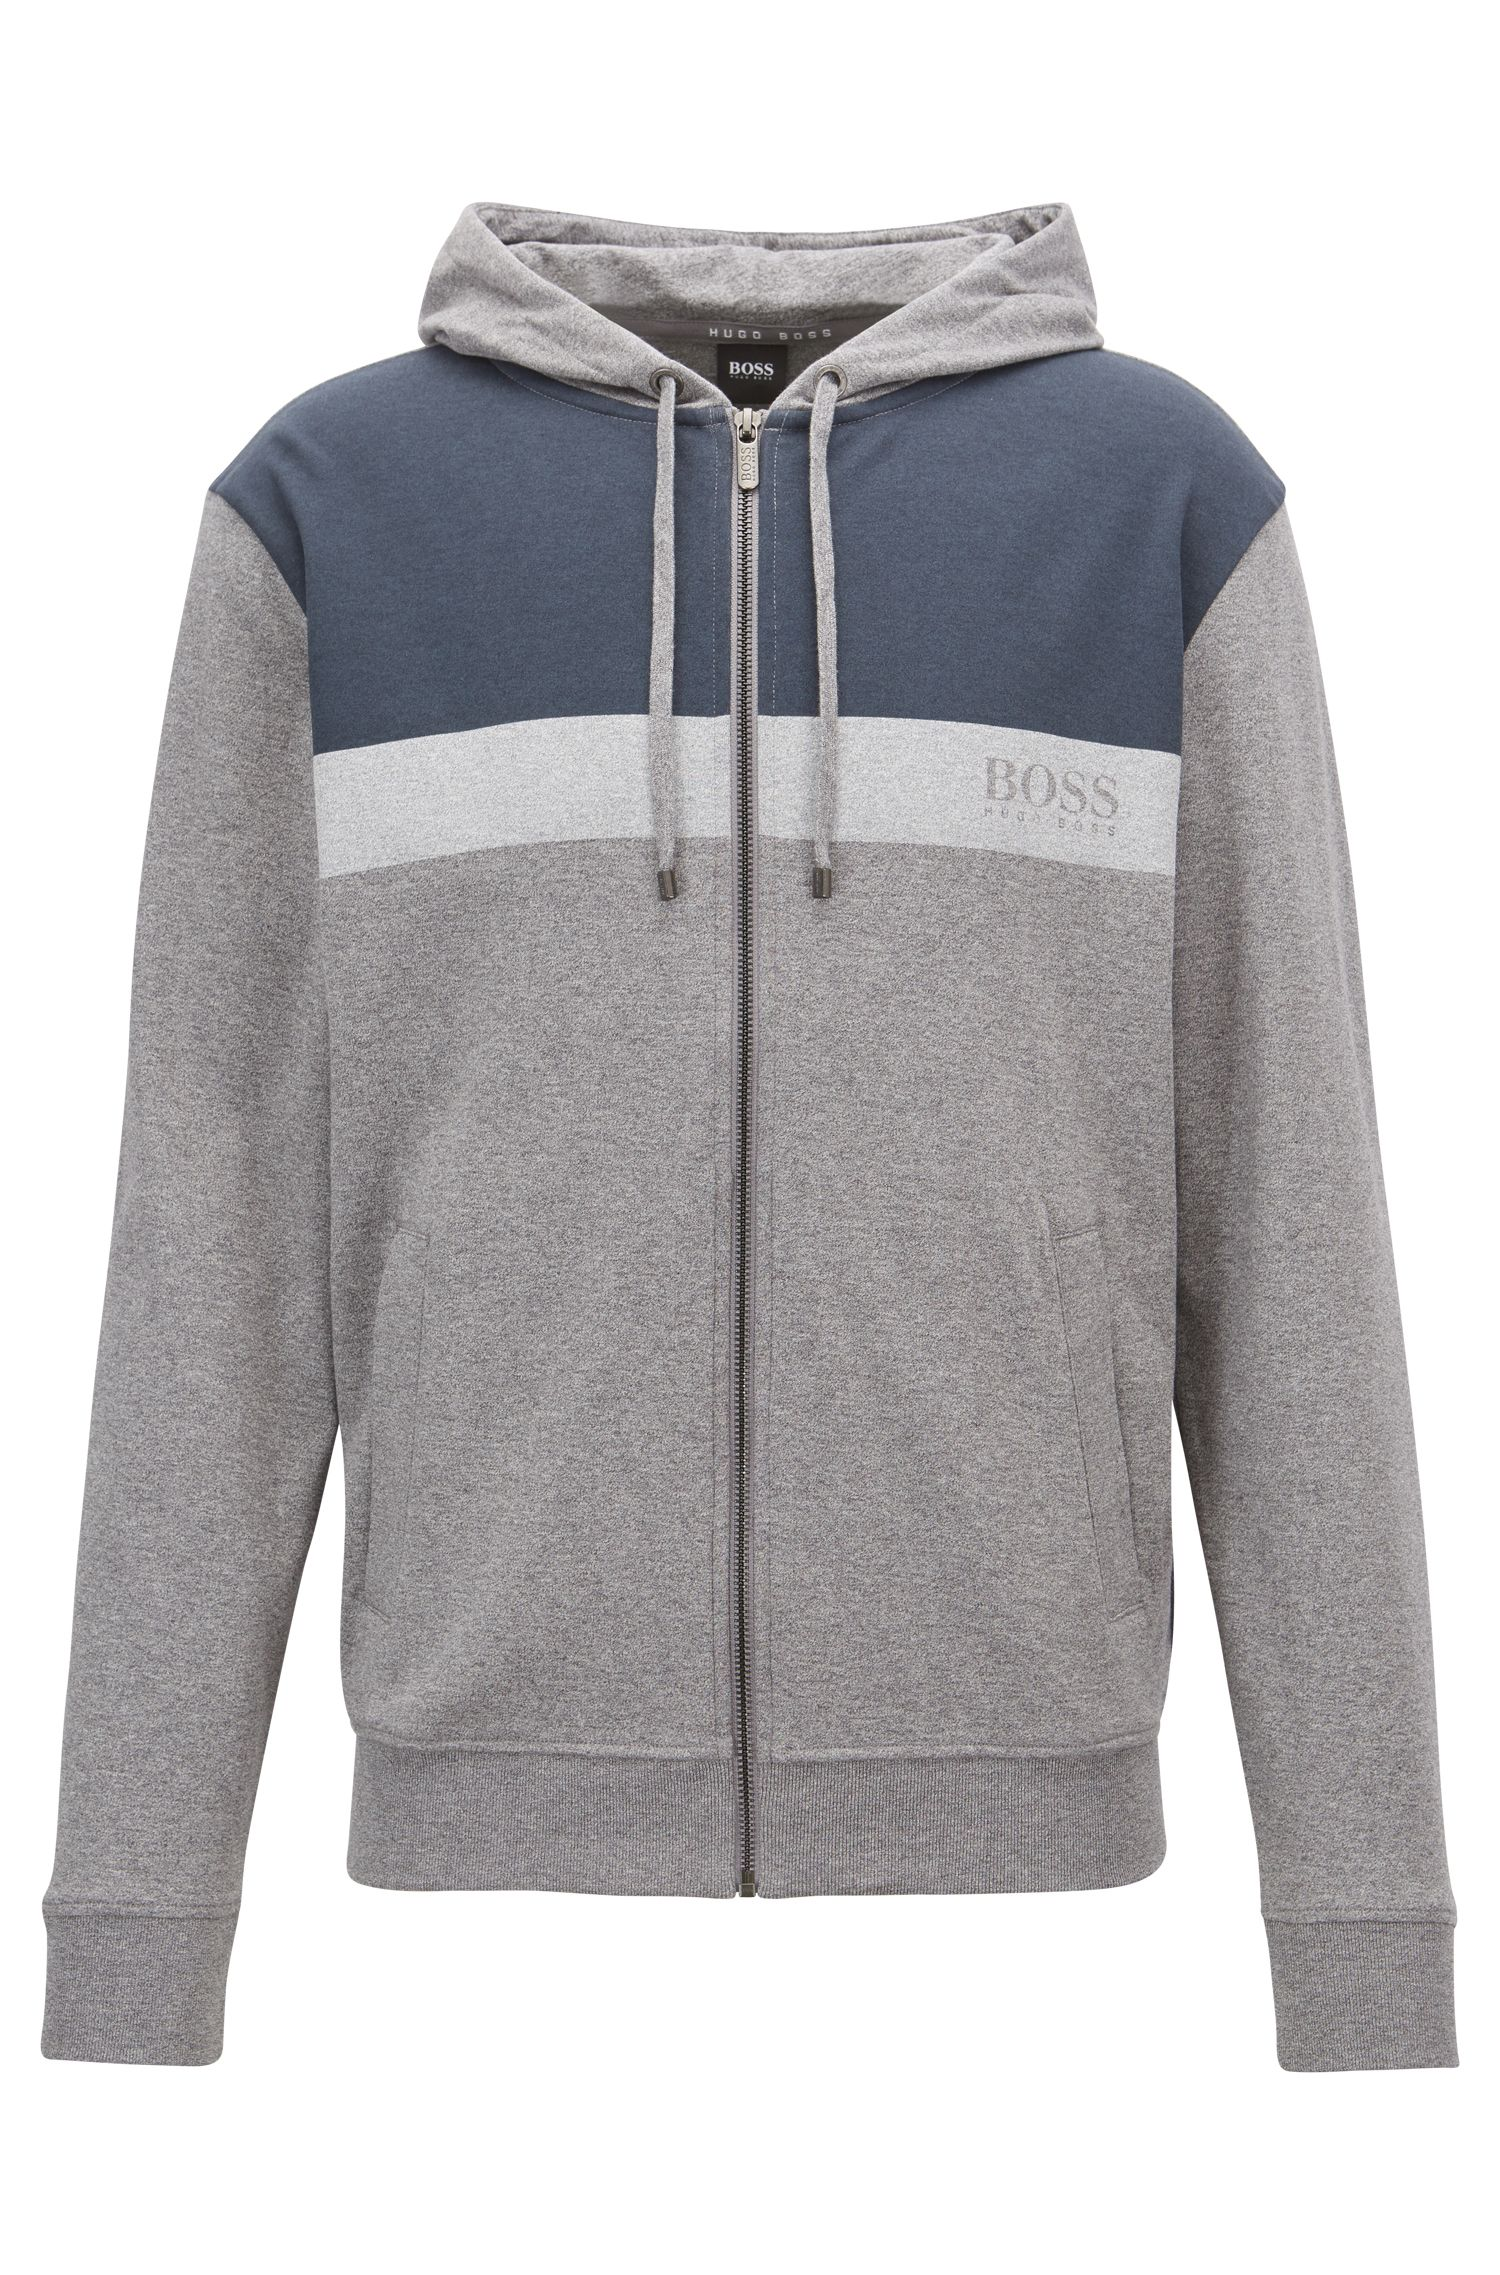 Colourblock loungewear hoodie in cotton jersey, Grey